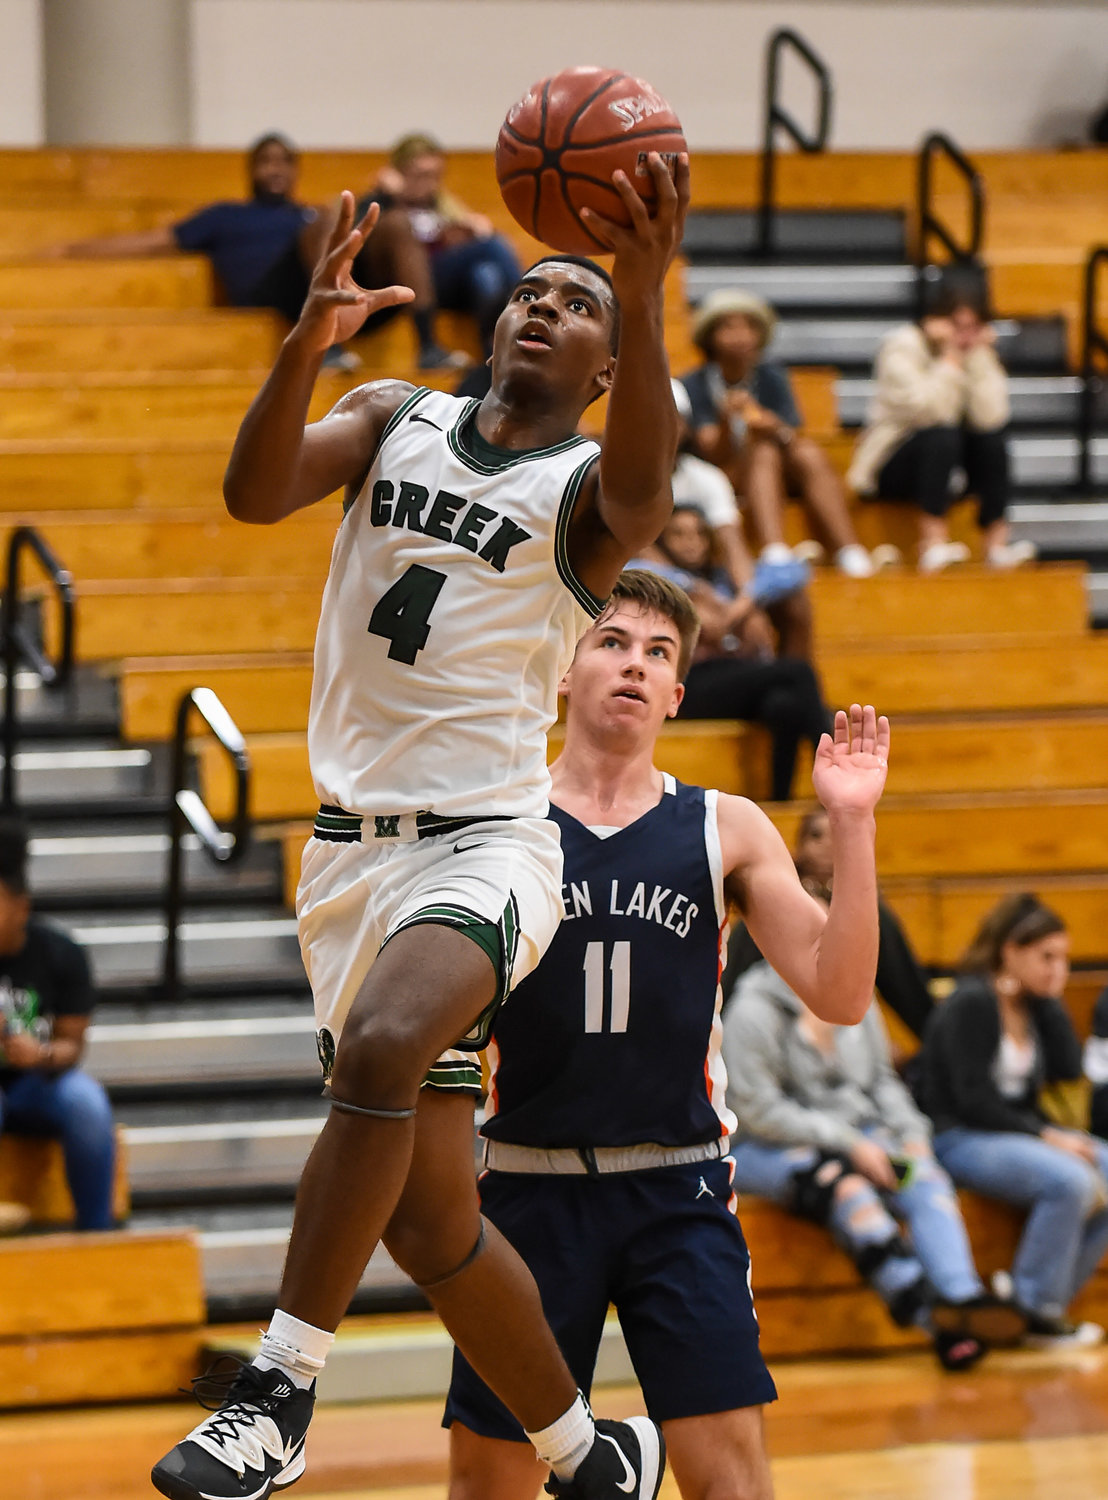 In this file photo from Jan. 14, 2020, Mayde Creek's Rommell Williams (4) drives up the lane to the basket scoring for the Rams during a district basketball game against Seven Lakes at Mayde Creek High. Williams scored a game-high 24 points for the Rams in a 45-43 win over Cinco Ranch on Feb. 21 that put Mayde Creek in the playoffs for the second straight season.